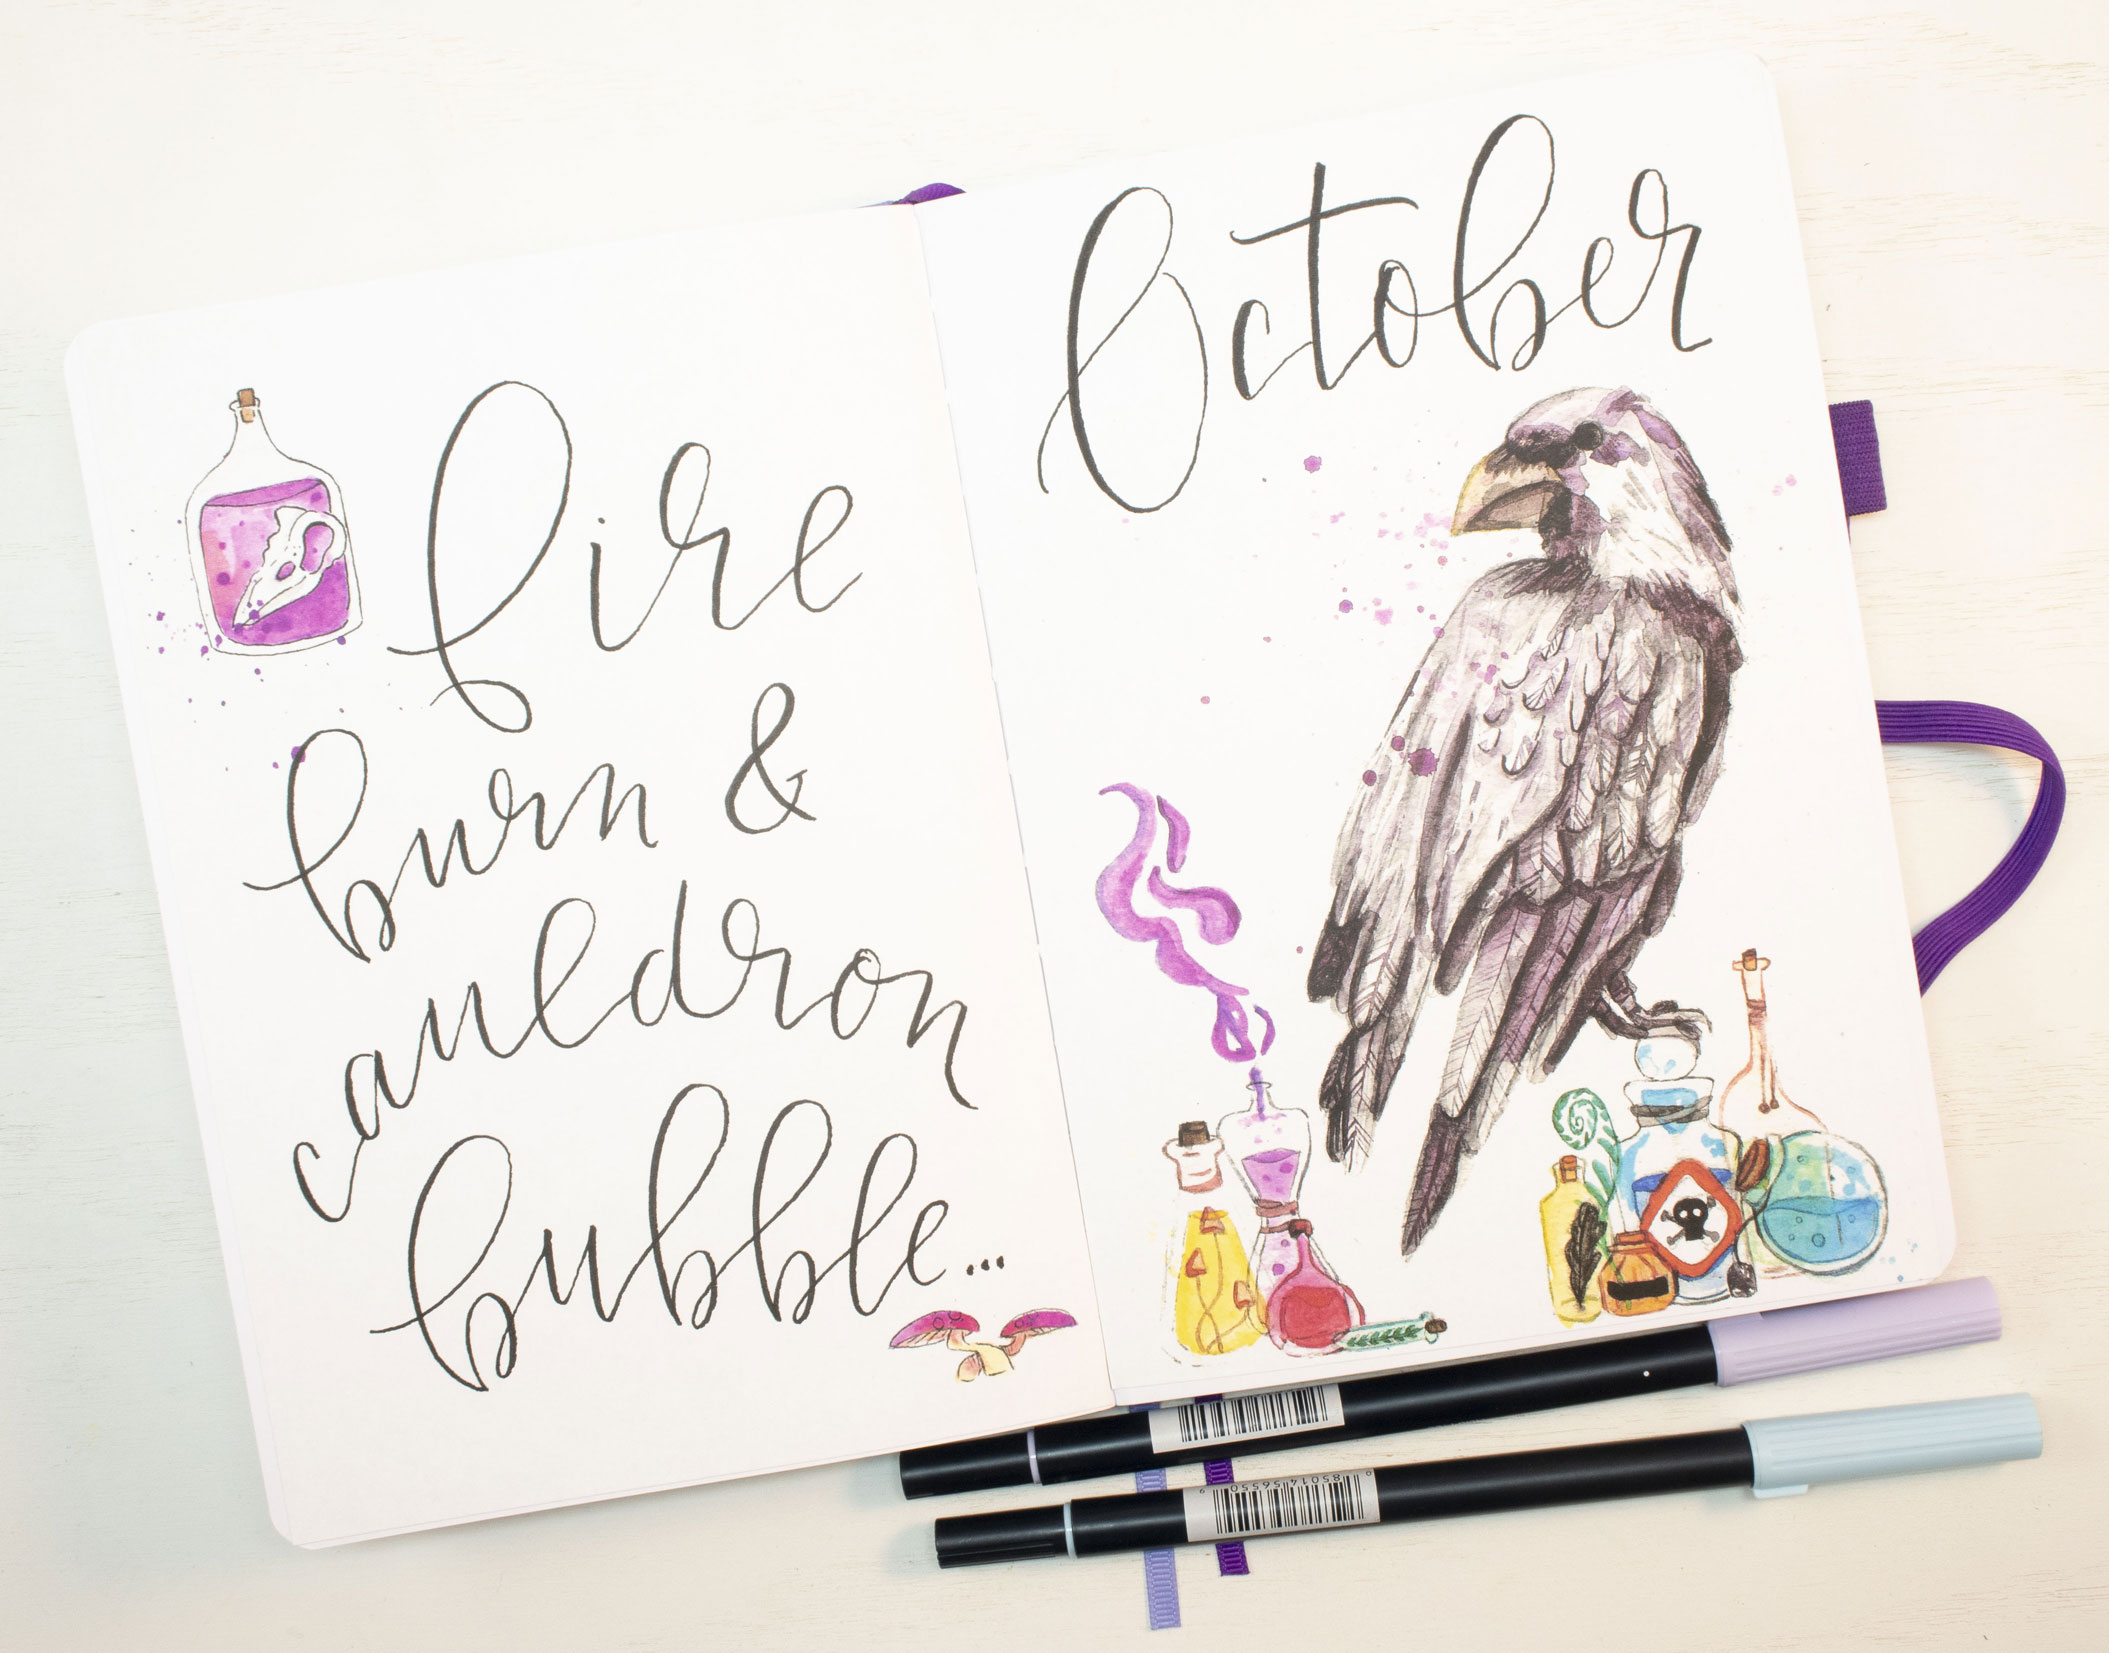 October 2020 Sheena of the Journal printable hello and quote spread.